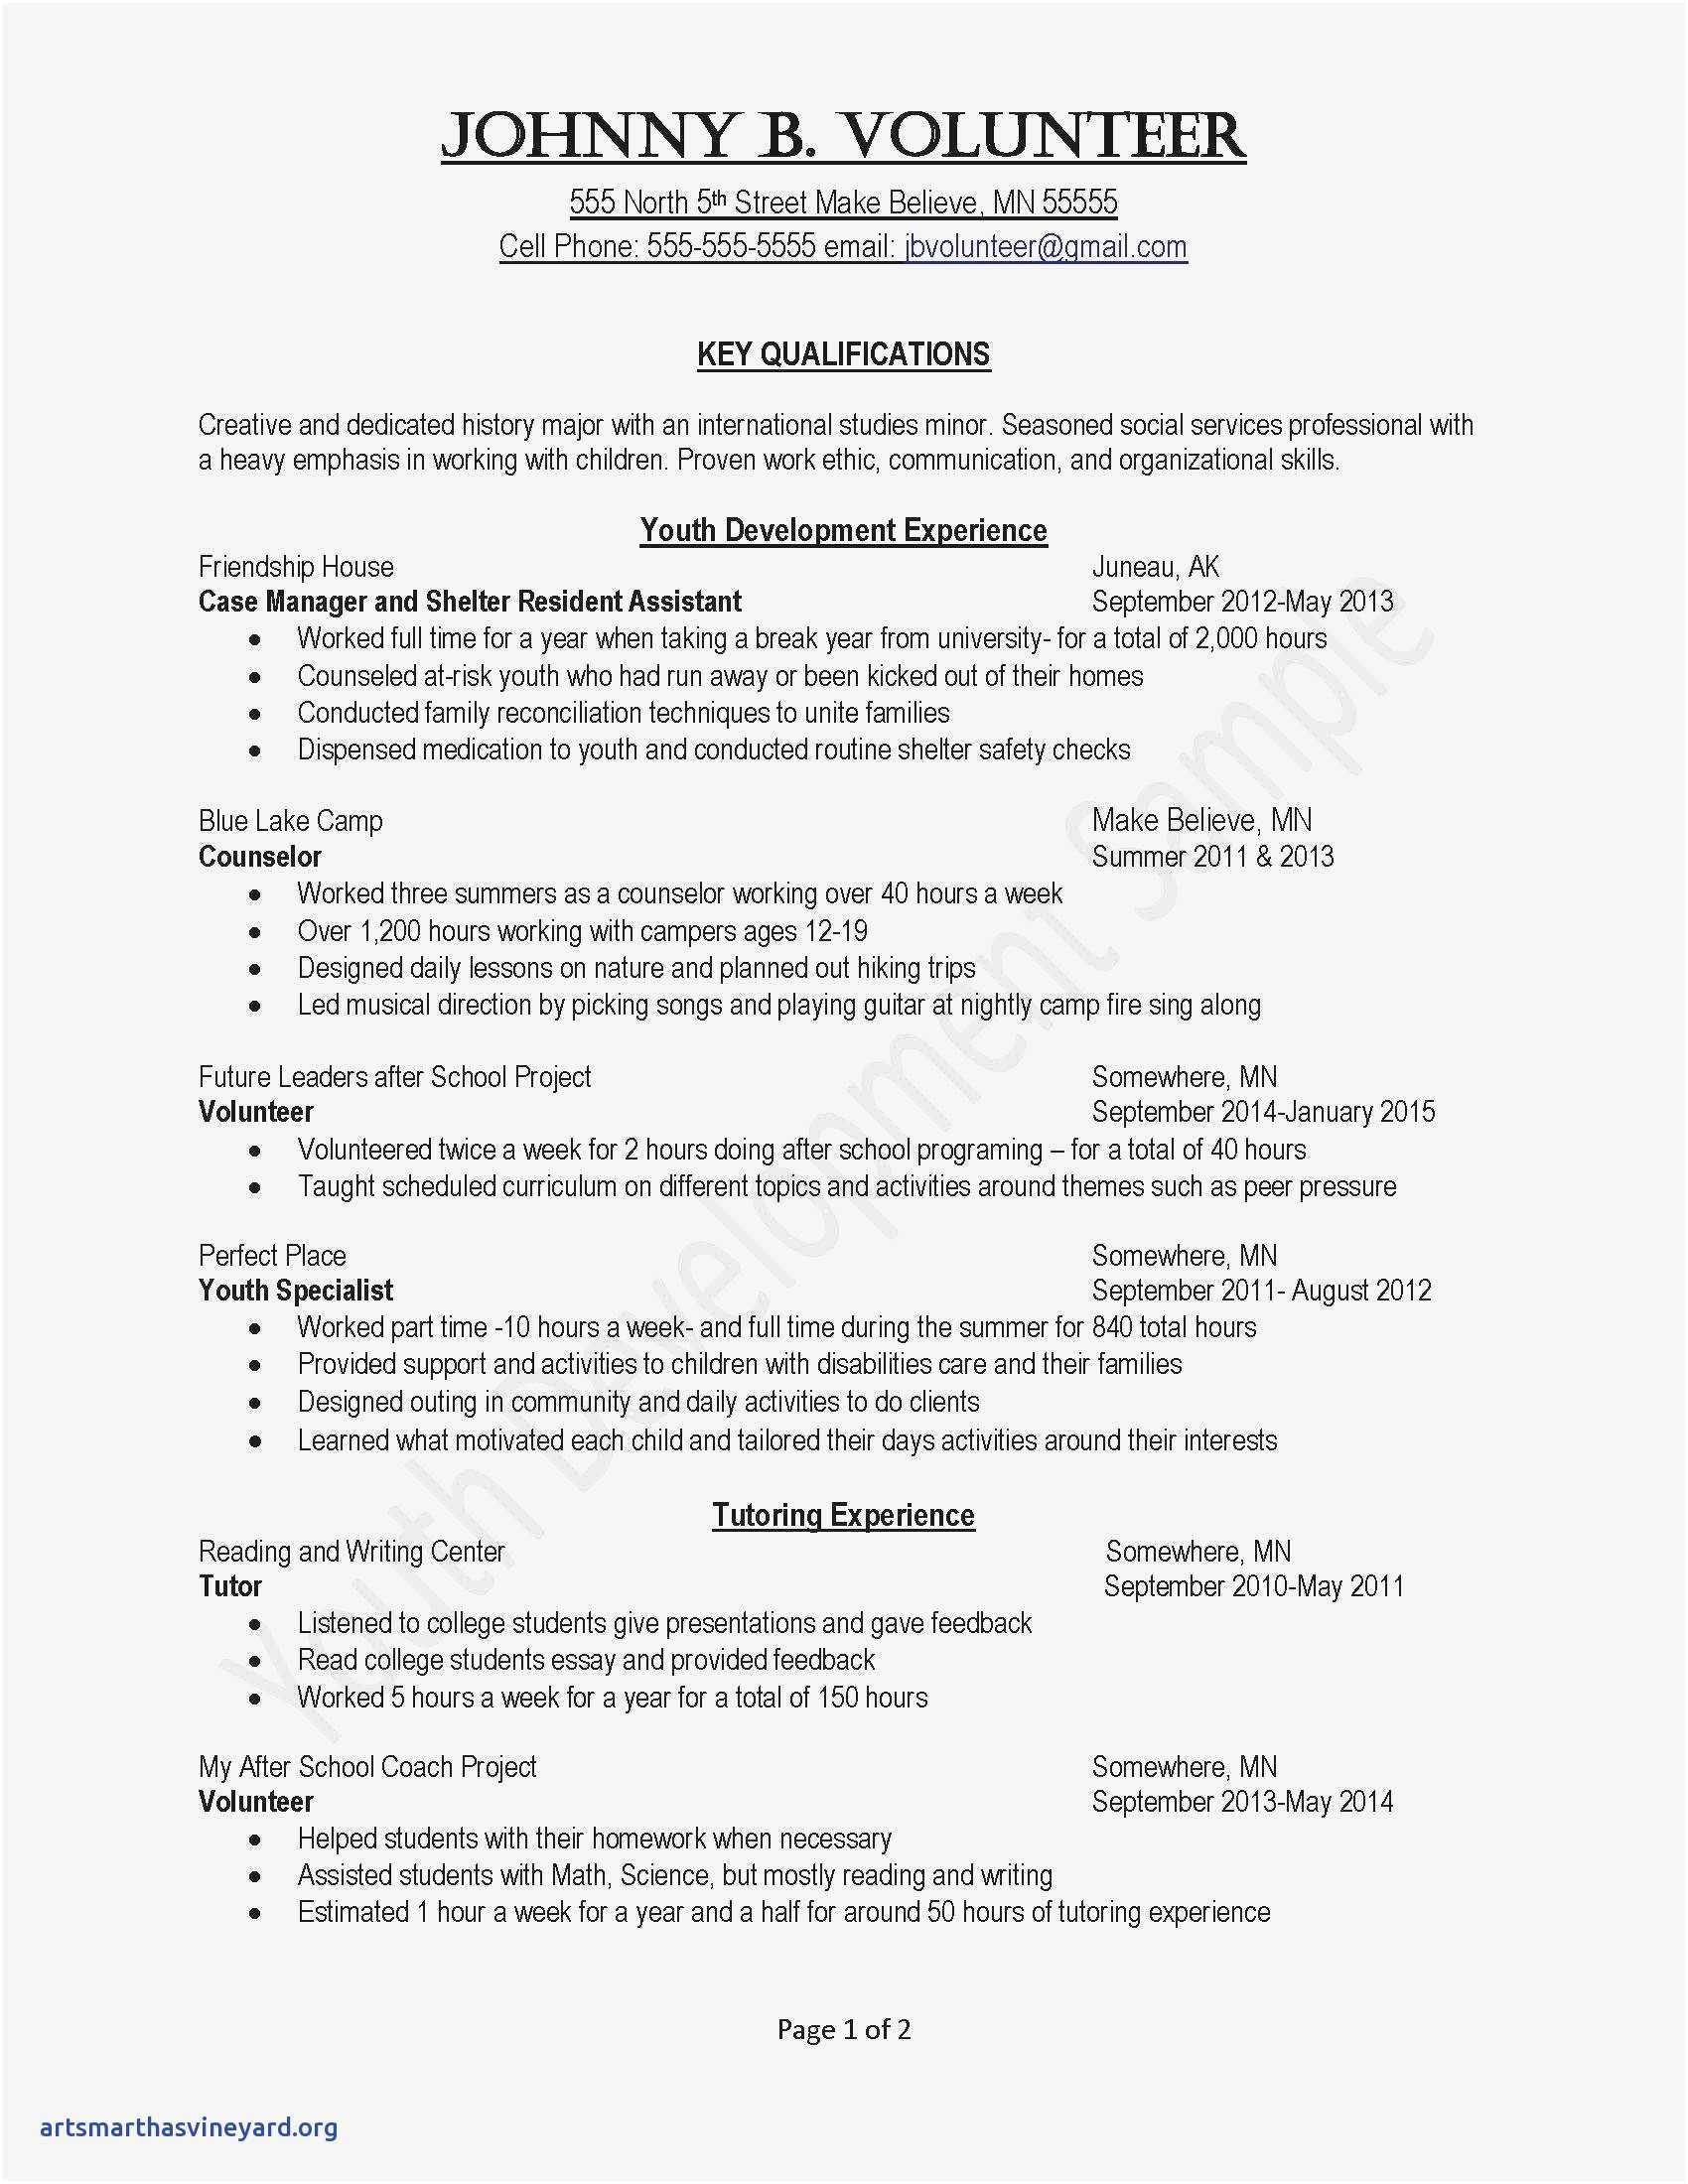 Fire Employee Letter Template - Job Fer Letter Template Us Copy Od Consultant Cover Letter Fungram